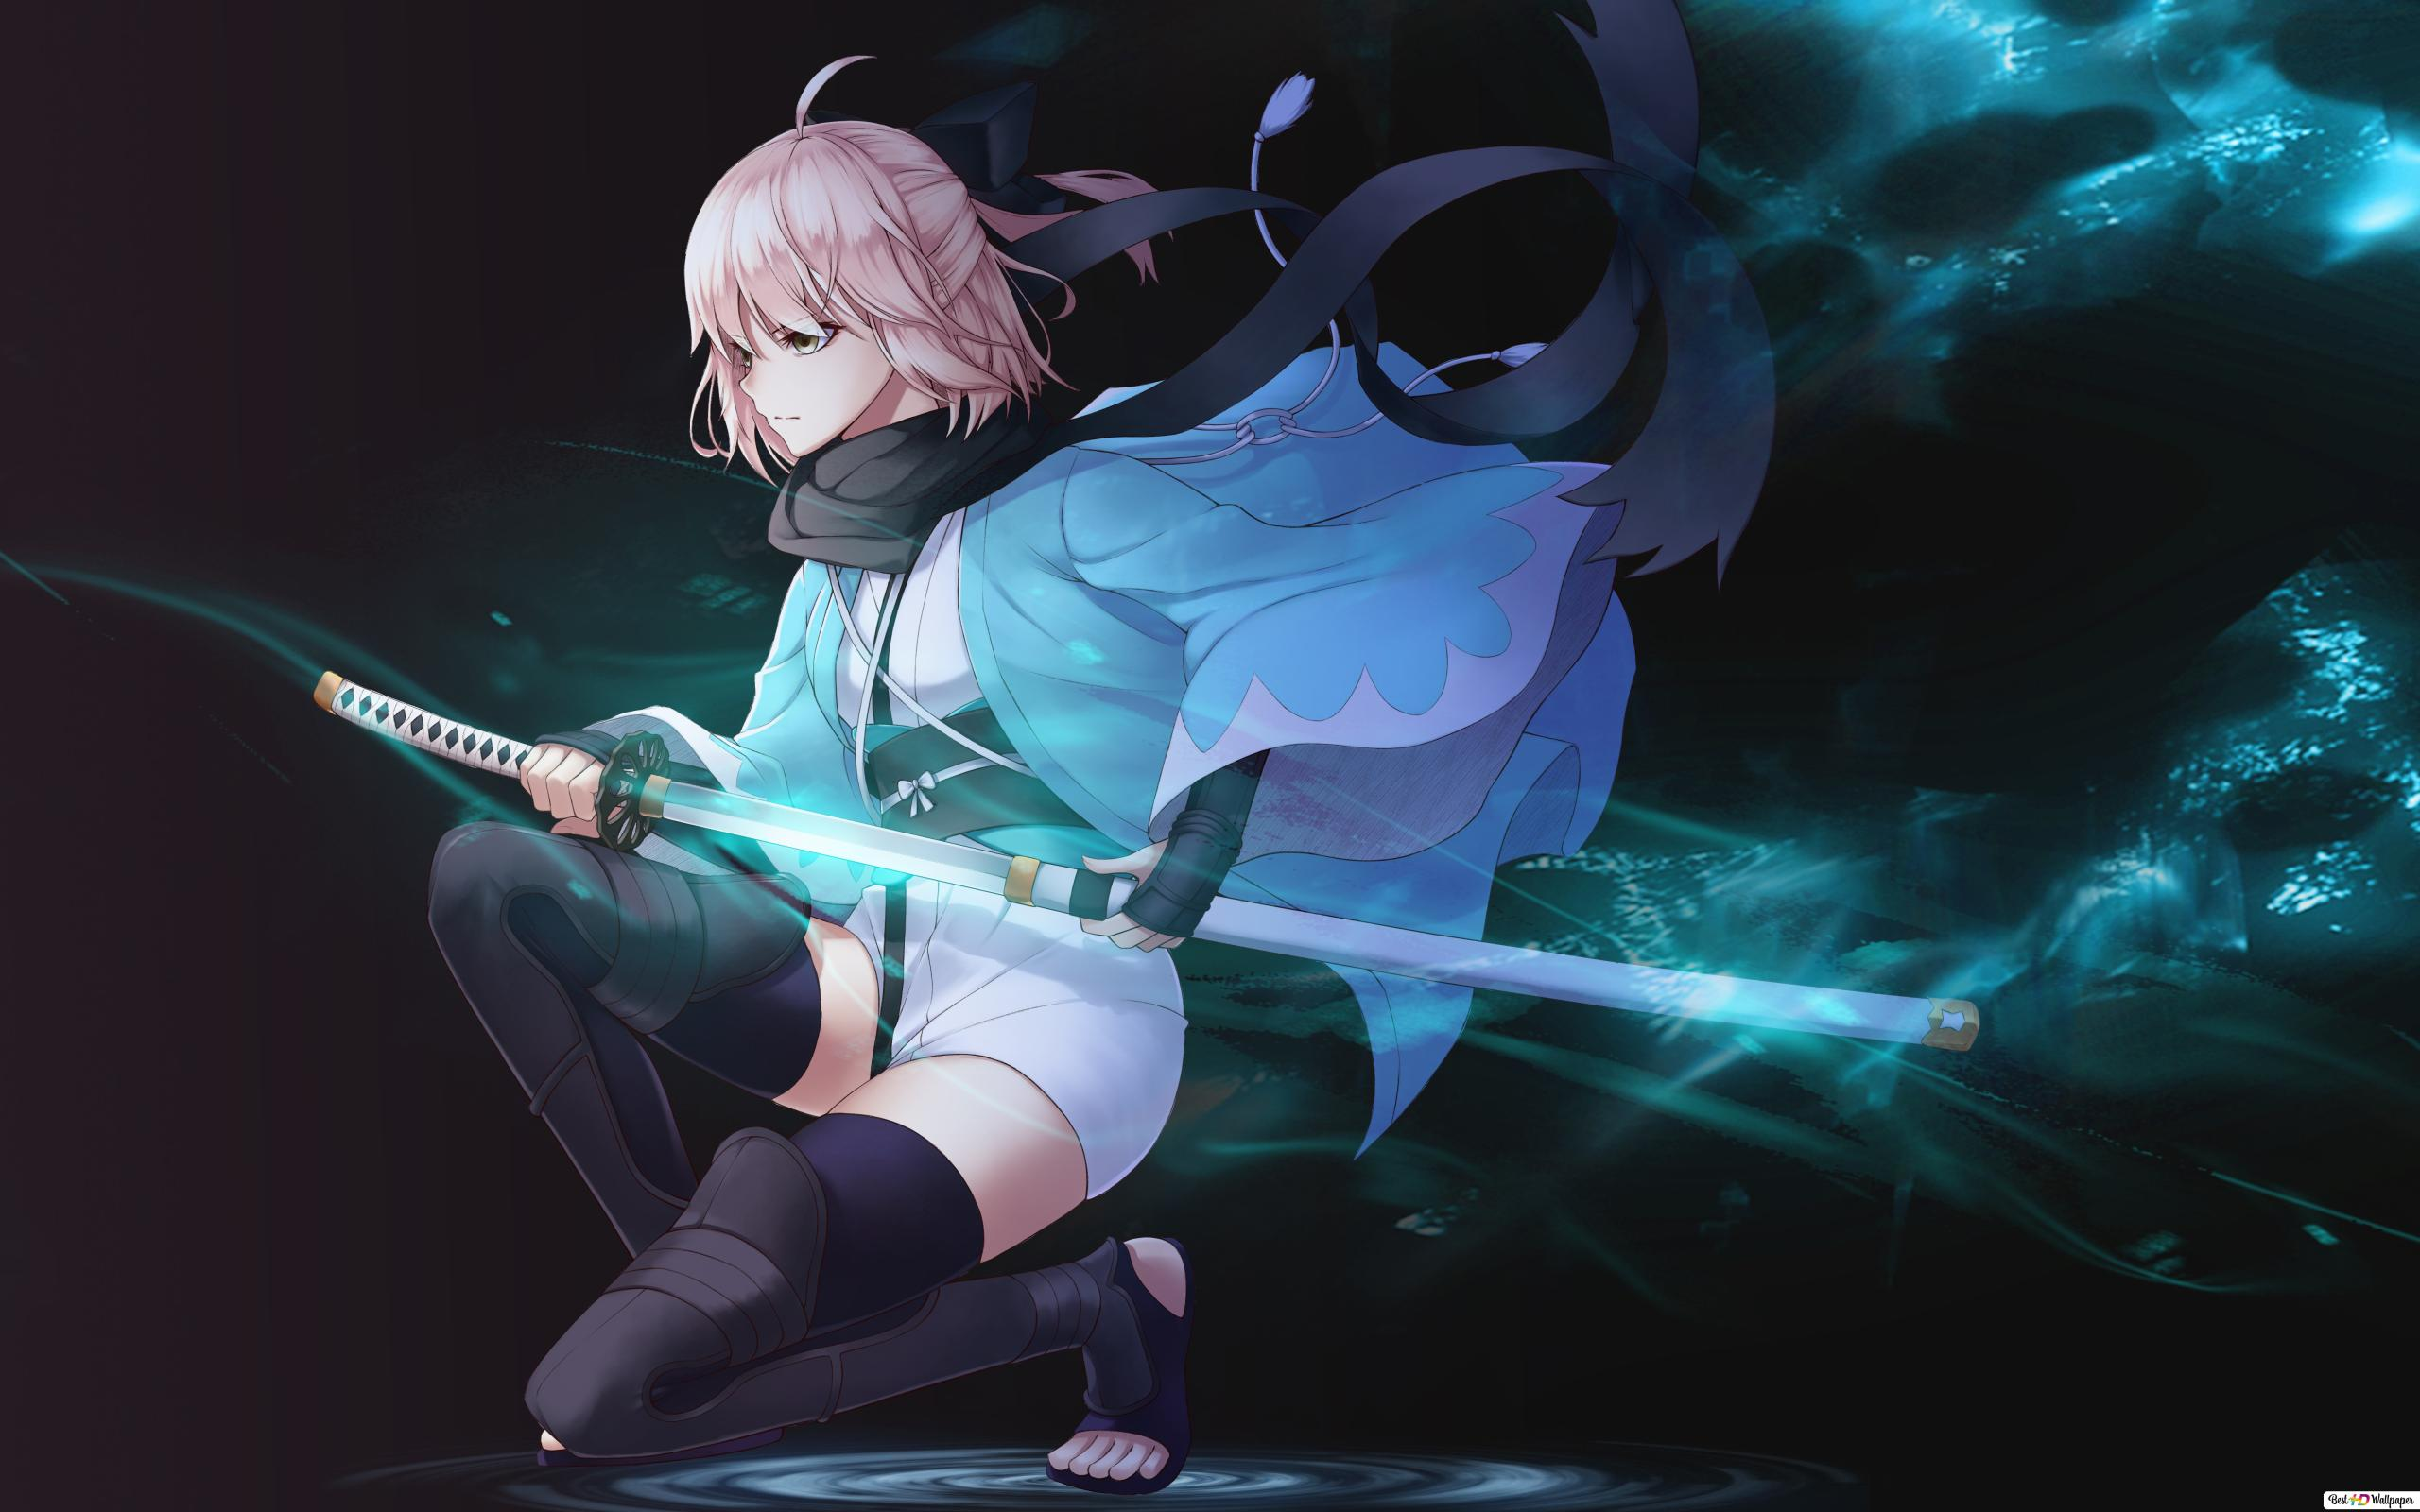 Fate Grand Order Okita Souji Sakura Saber Hd Wallpaper Download